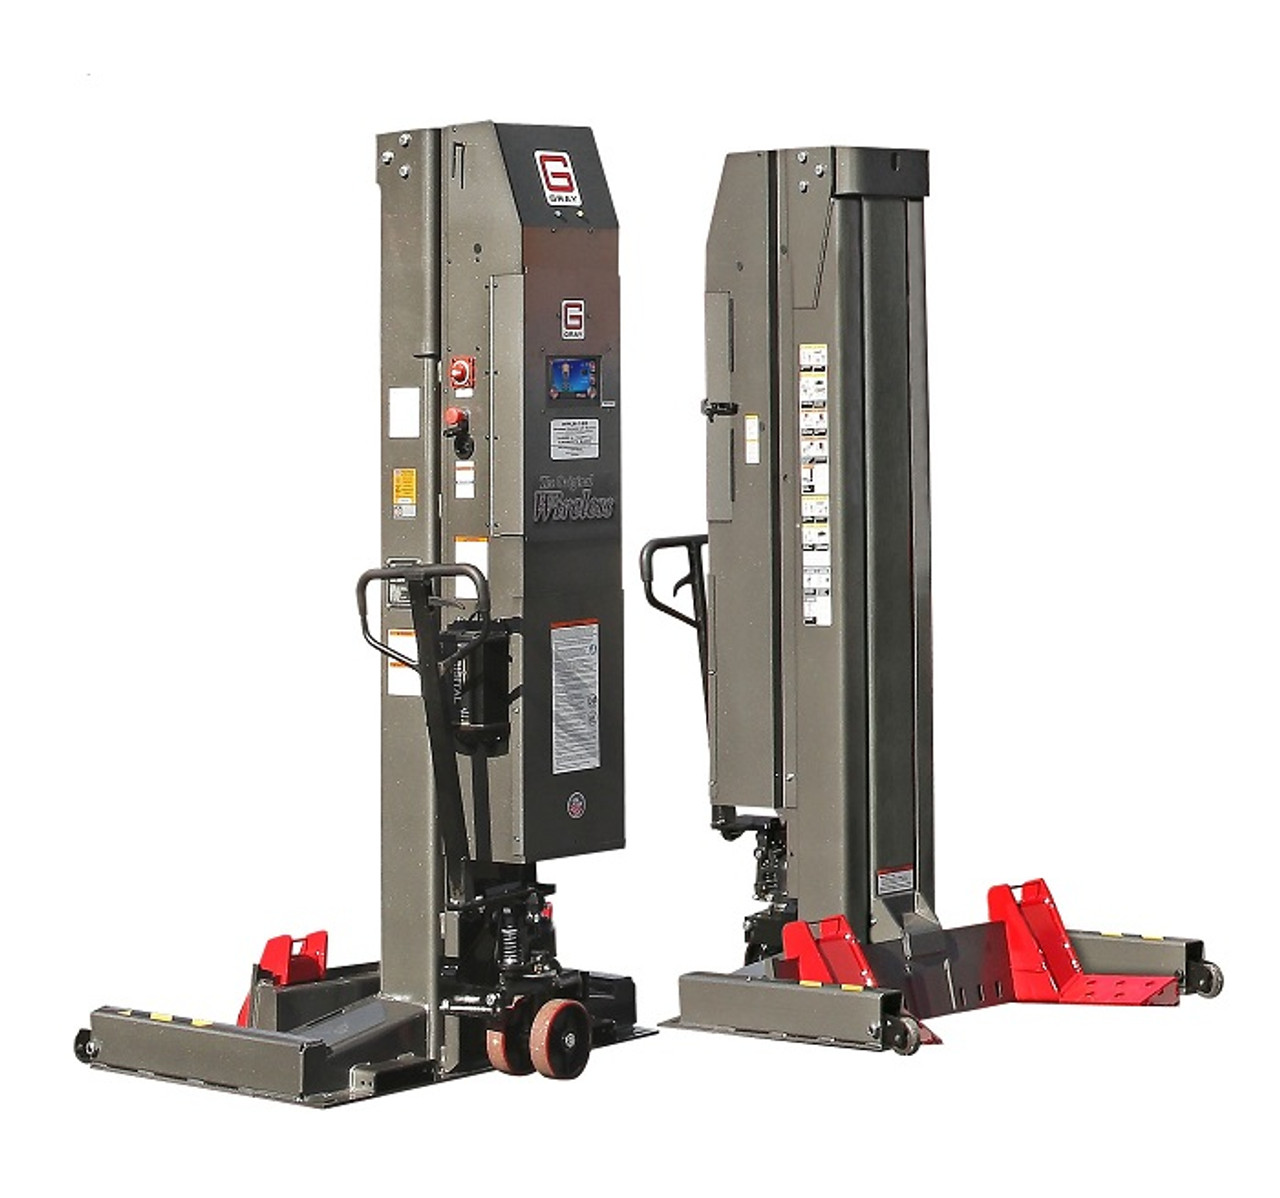 Gray WPLS-190 19,000LB Wireless Portable Lift System (1 post)  (US MADE)